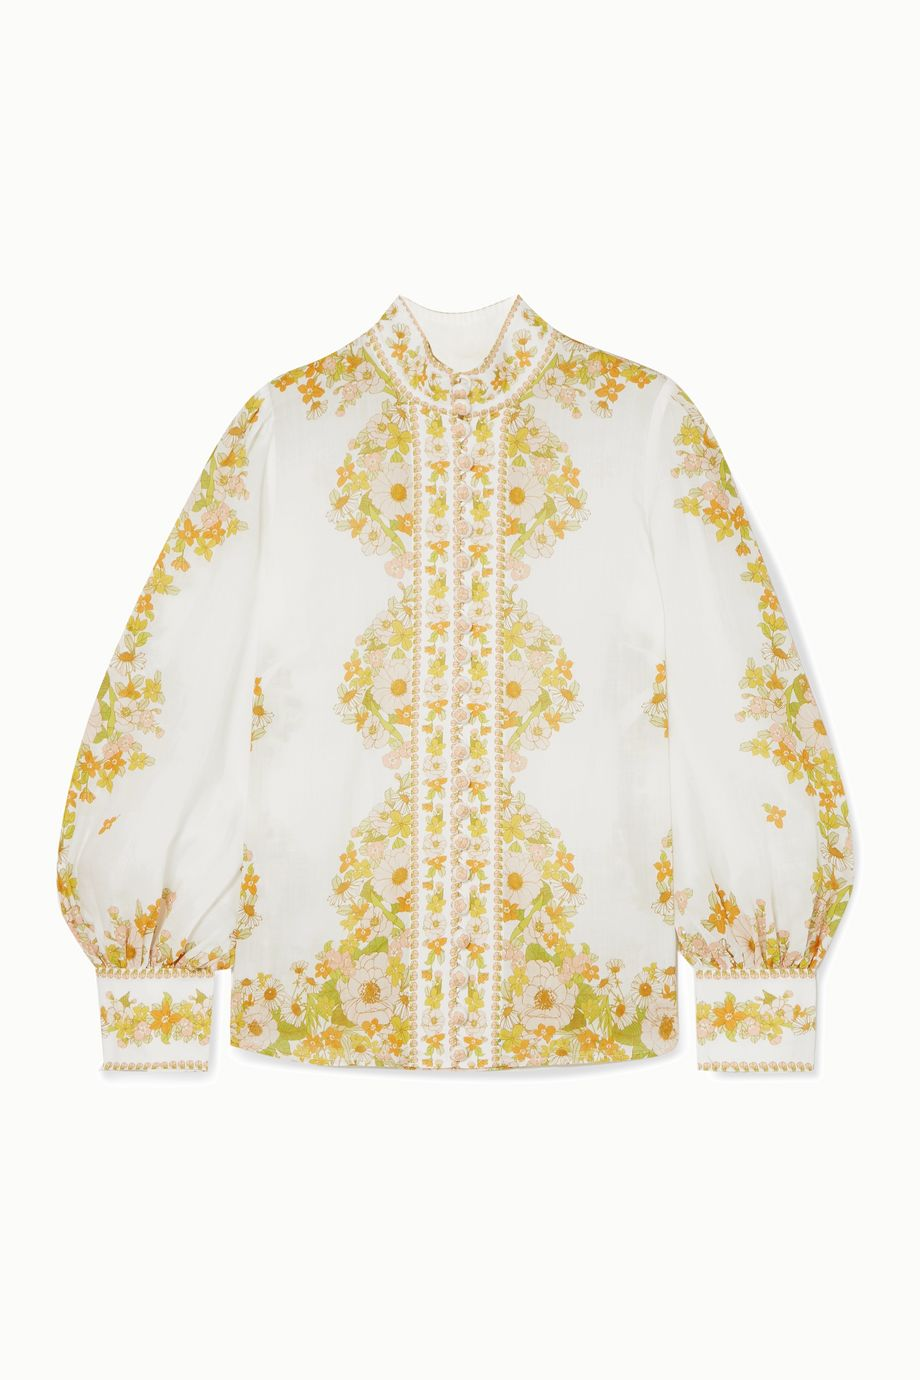 Zimmermann Super Eight floral-print ramie blouse